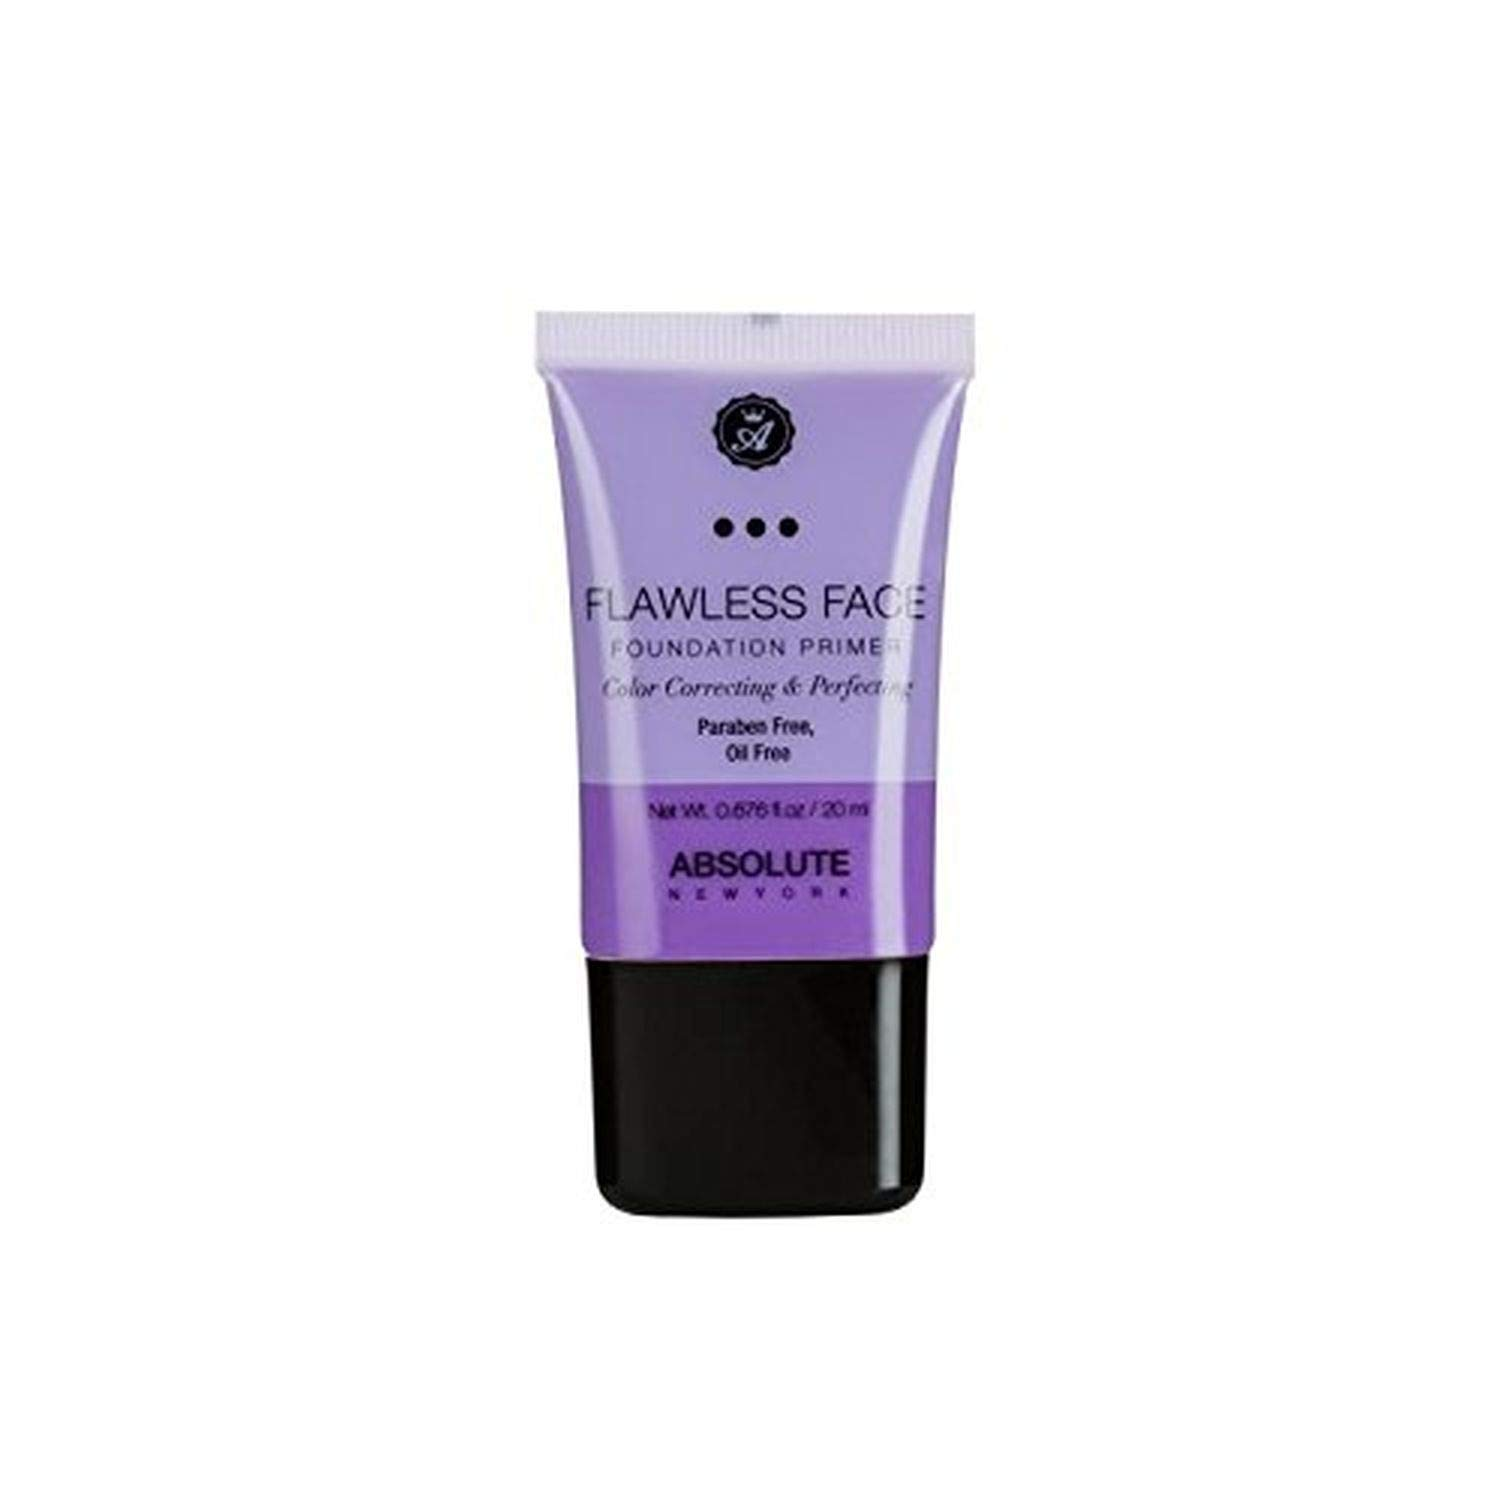 Absolute New York Flawless Face Foundation Primer, Lavender, 20ml